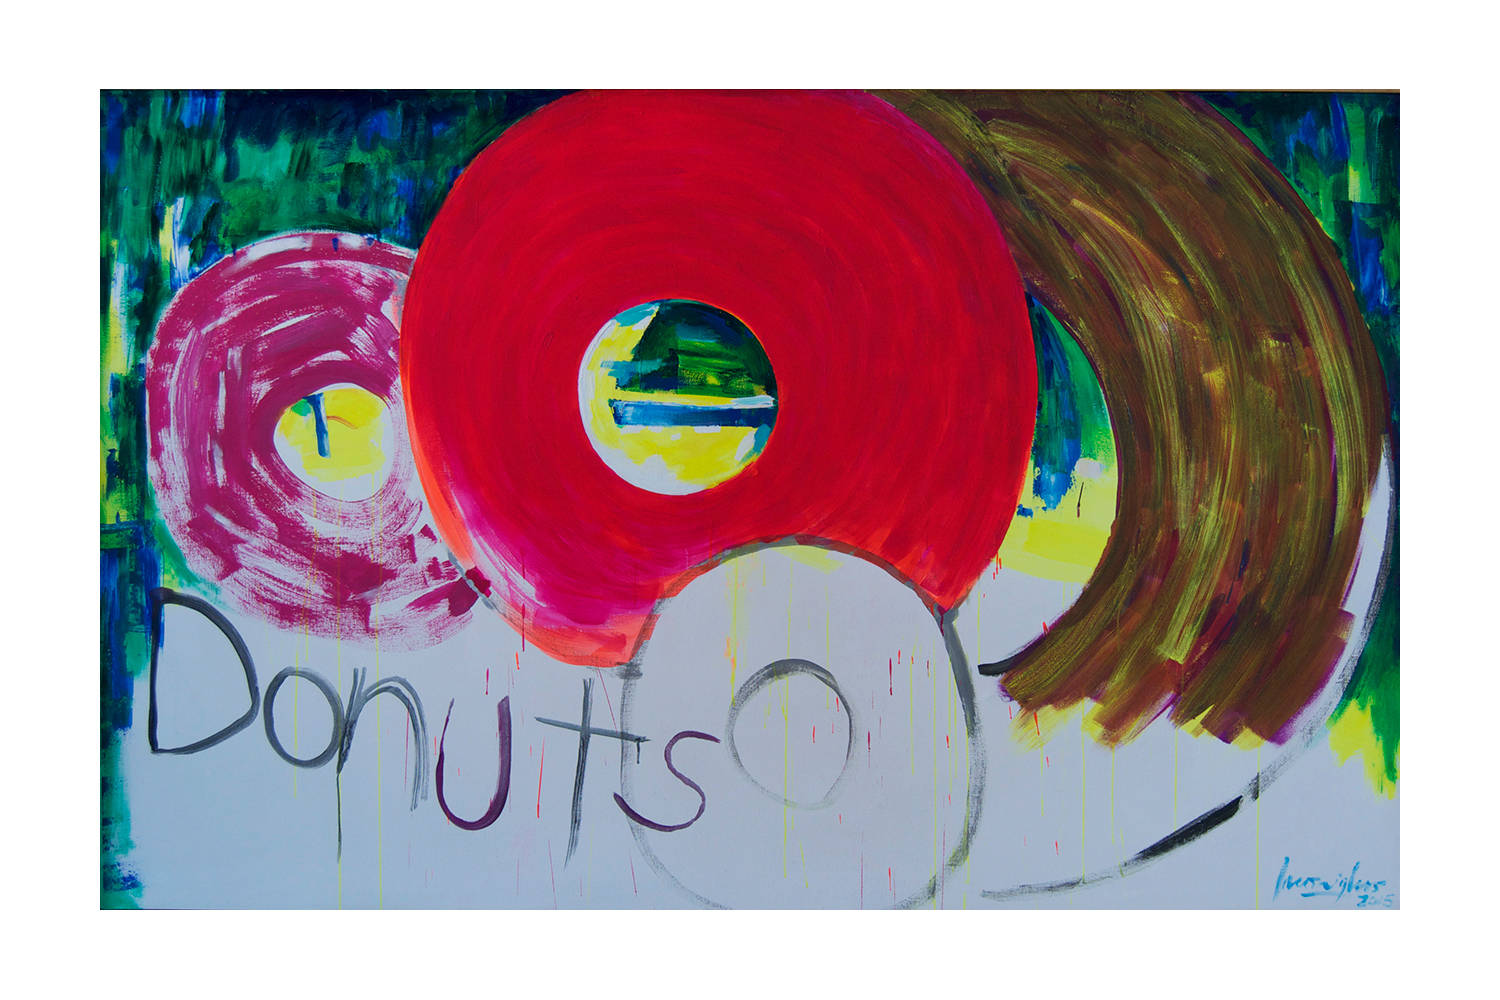 From the Donut Series,  2015 Acrylic on canvas 72 x 108 inches